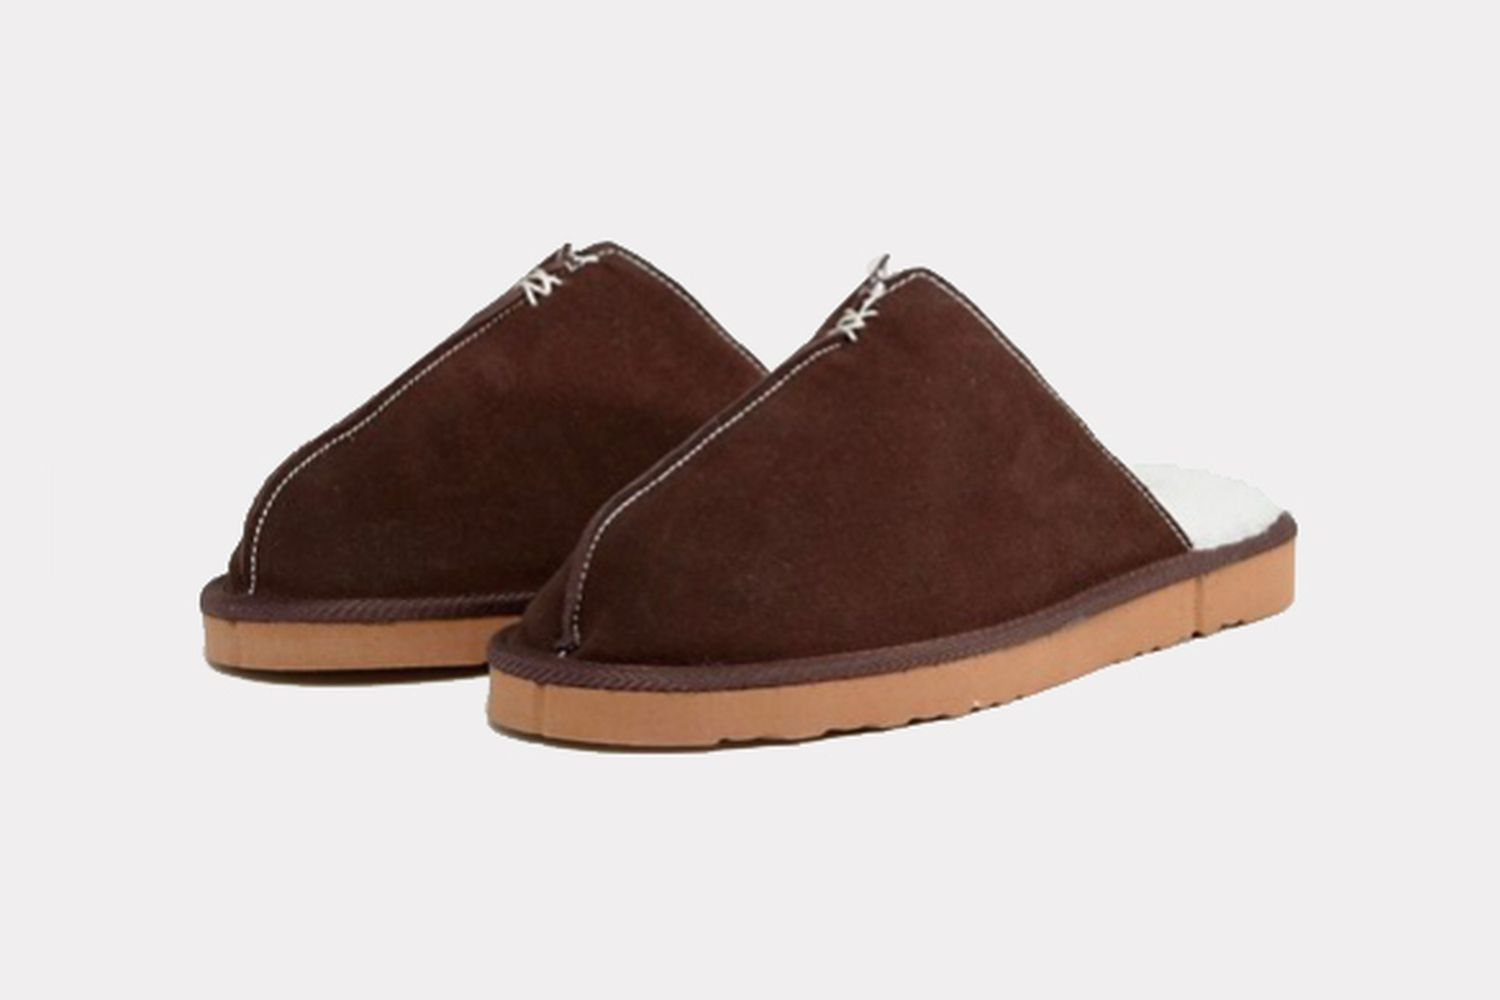 Slip on suede slippers